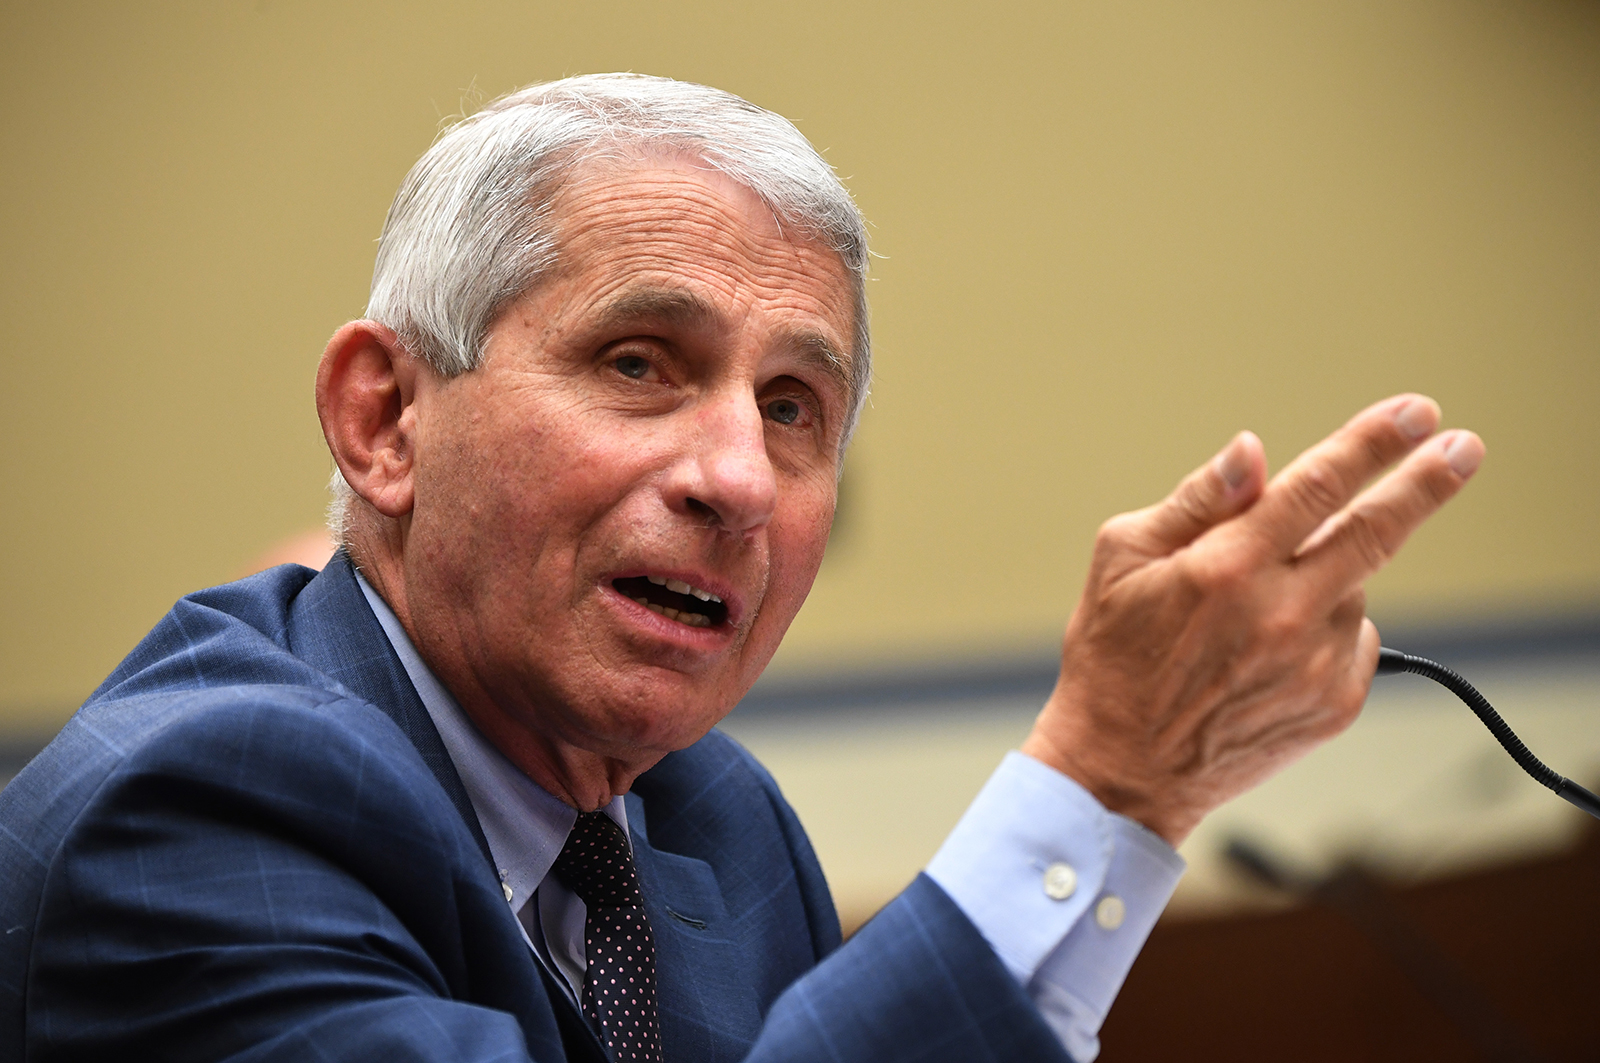 Dr. Anthony Fauci, director of the National Institute for Allergy and Infectious Diseases, testifies before a House Subcommittee on the Coronavirus Crisis hearing in Washington, DC, on July 31.